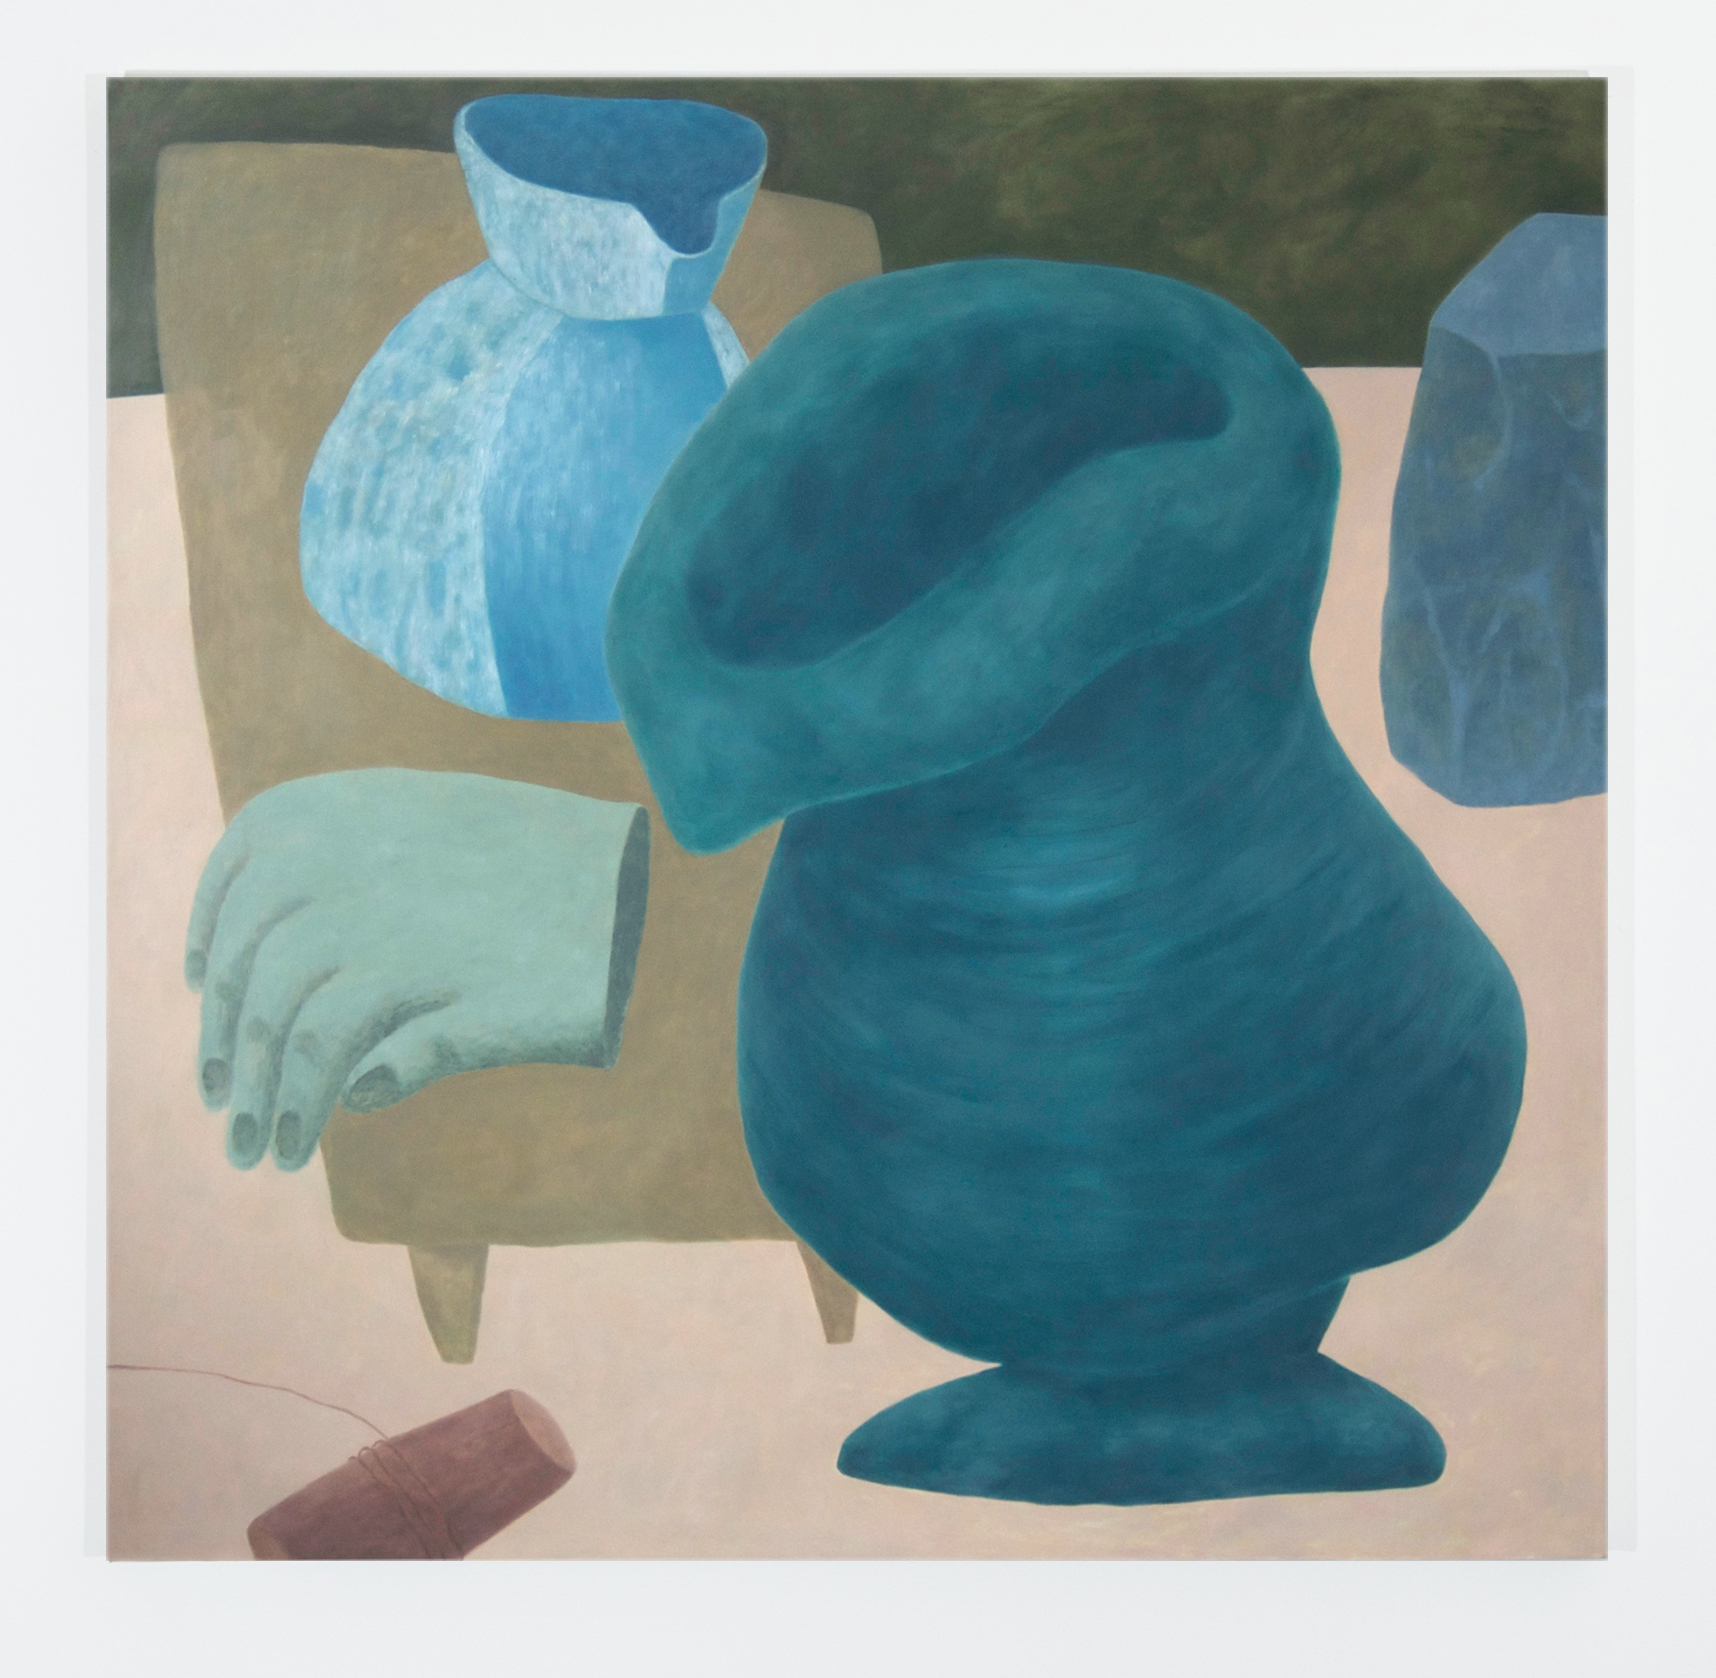 Droopy Vase  55 inches x 55 inches  Oil on canvas  2015